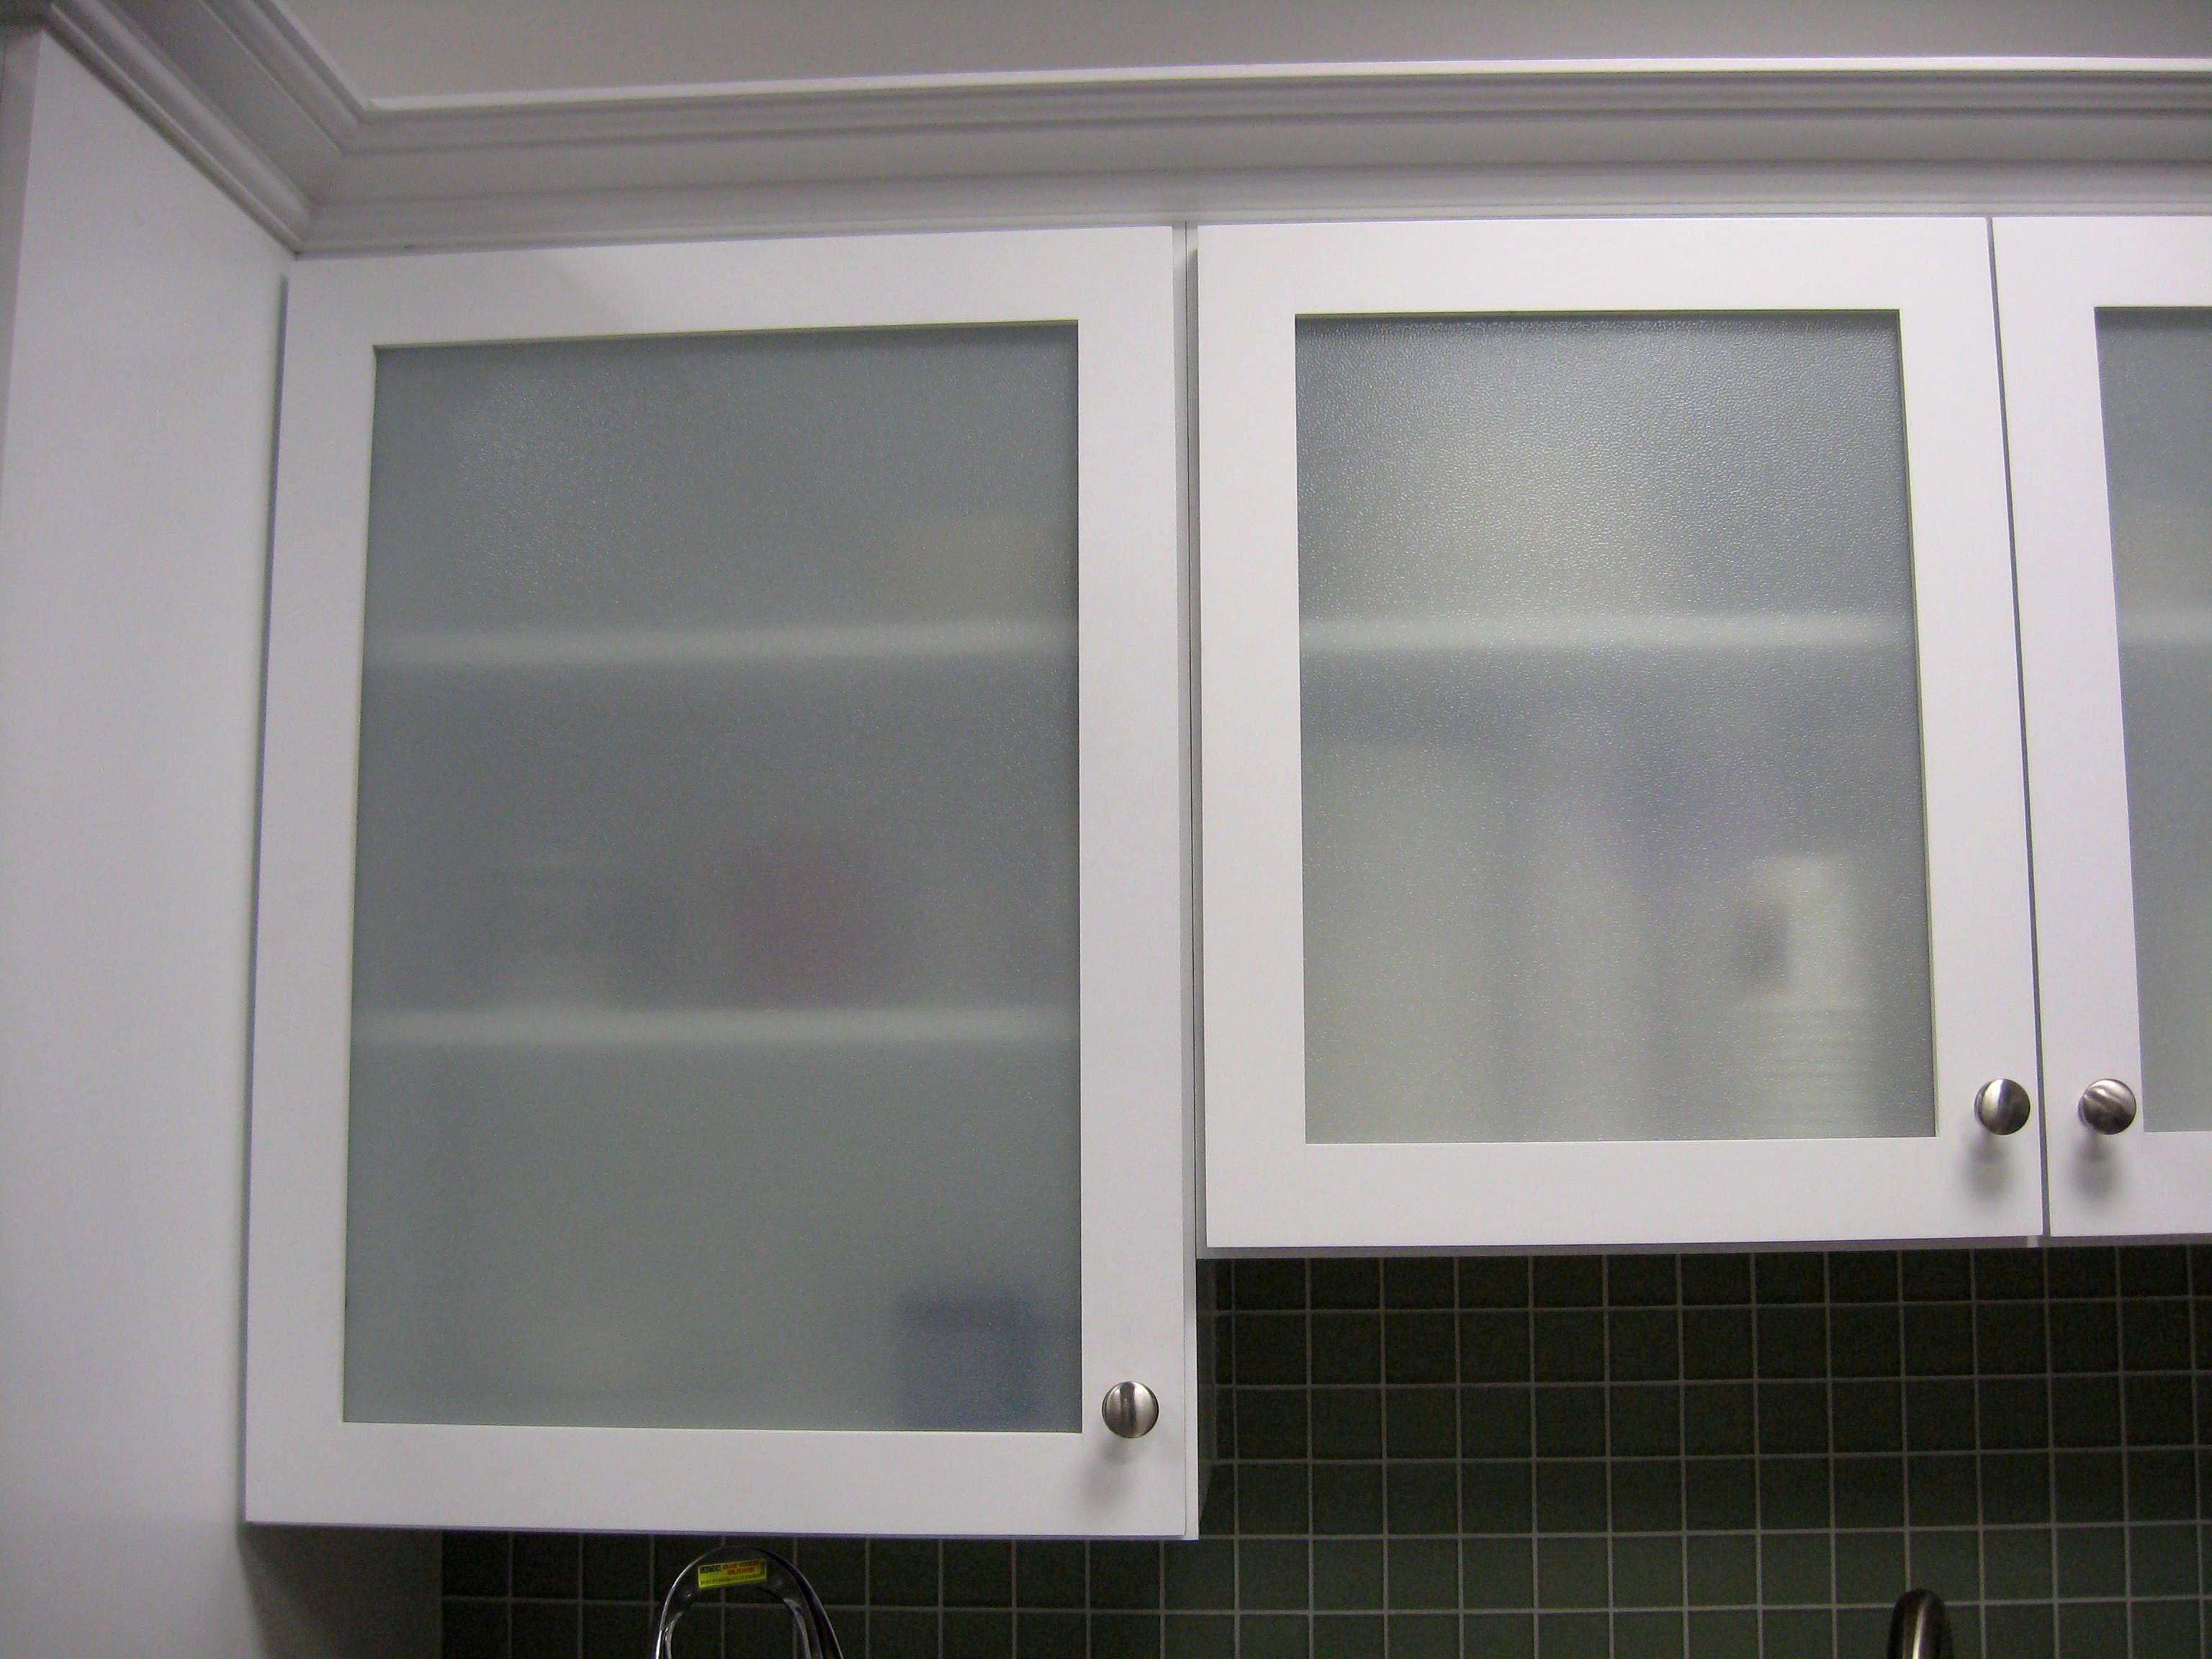 The glass doors on these gray kitchen cabinets lend a modern feel